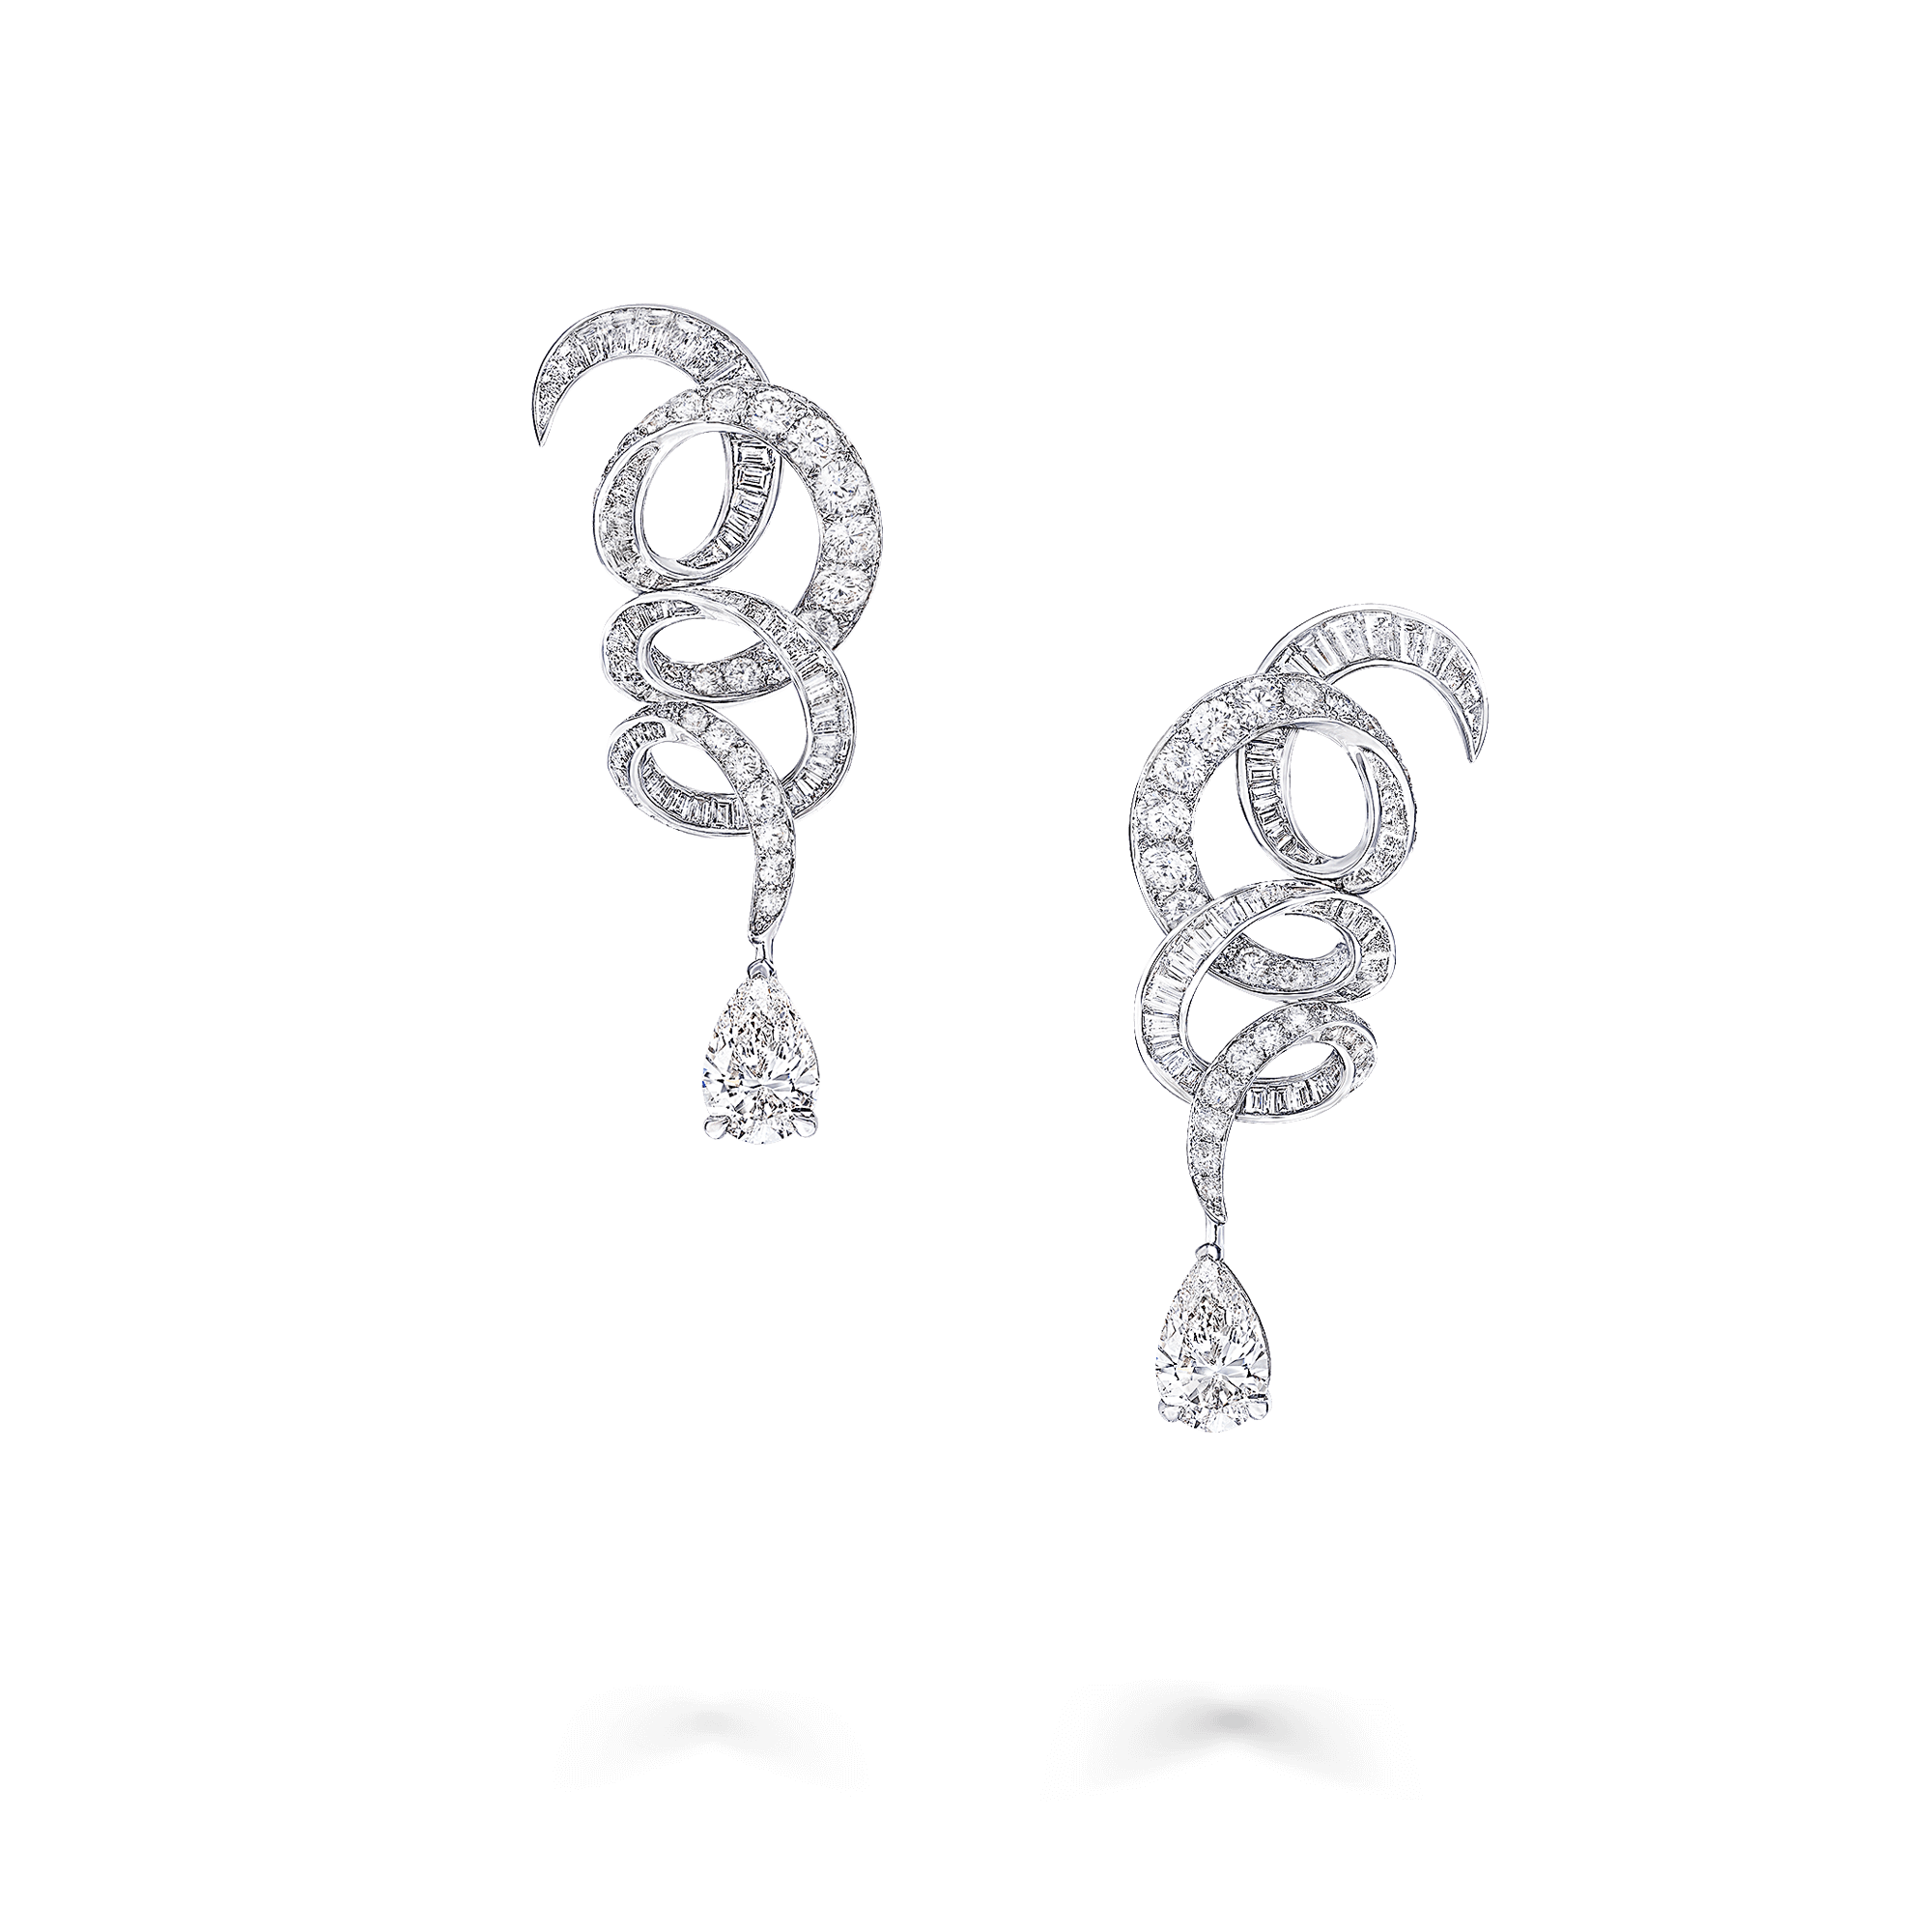 Earrings Inspired by Twombly Classic